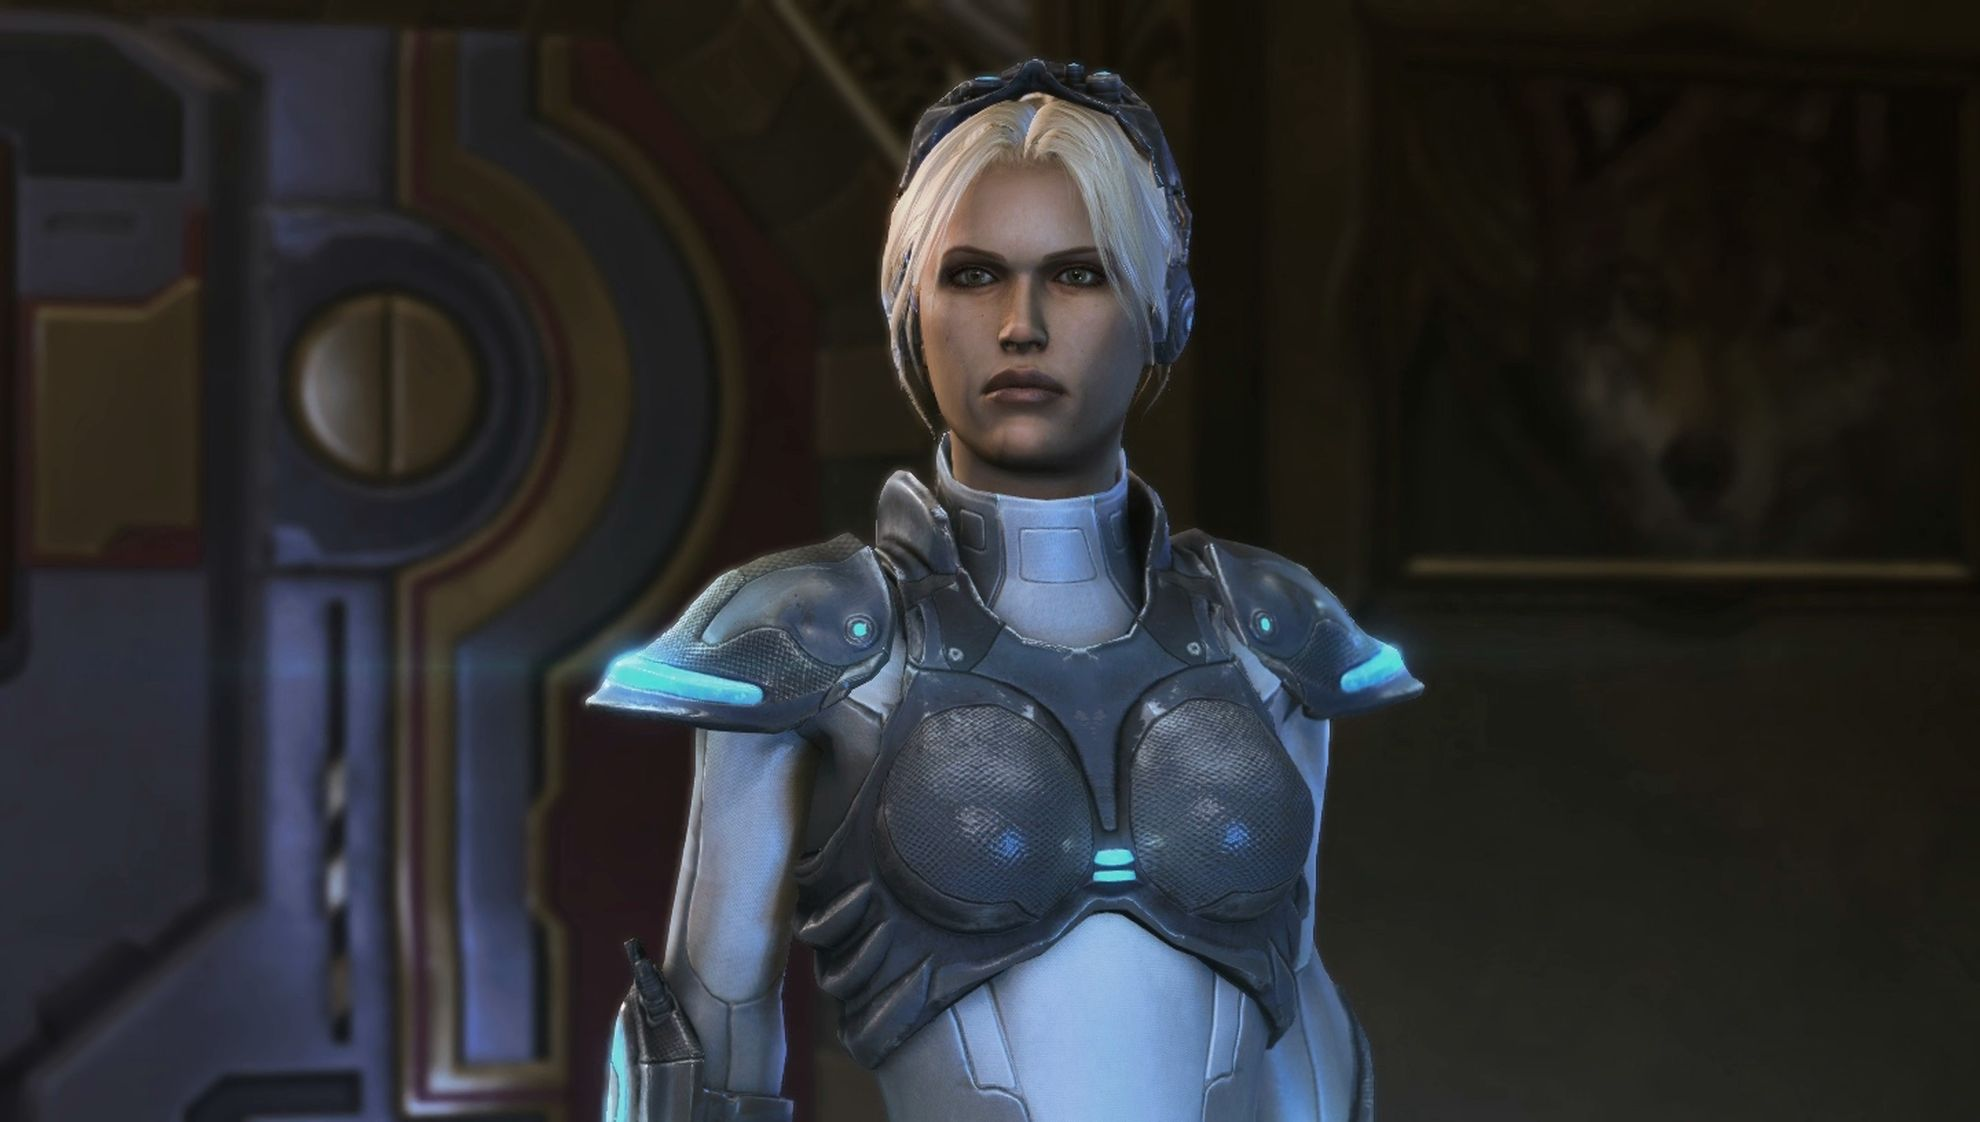 StarCraft 2 - final Nova Mission out this month, Alexi Stukov's